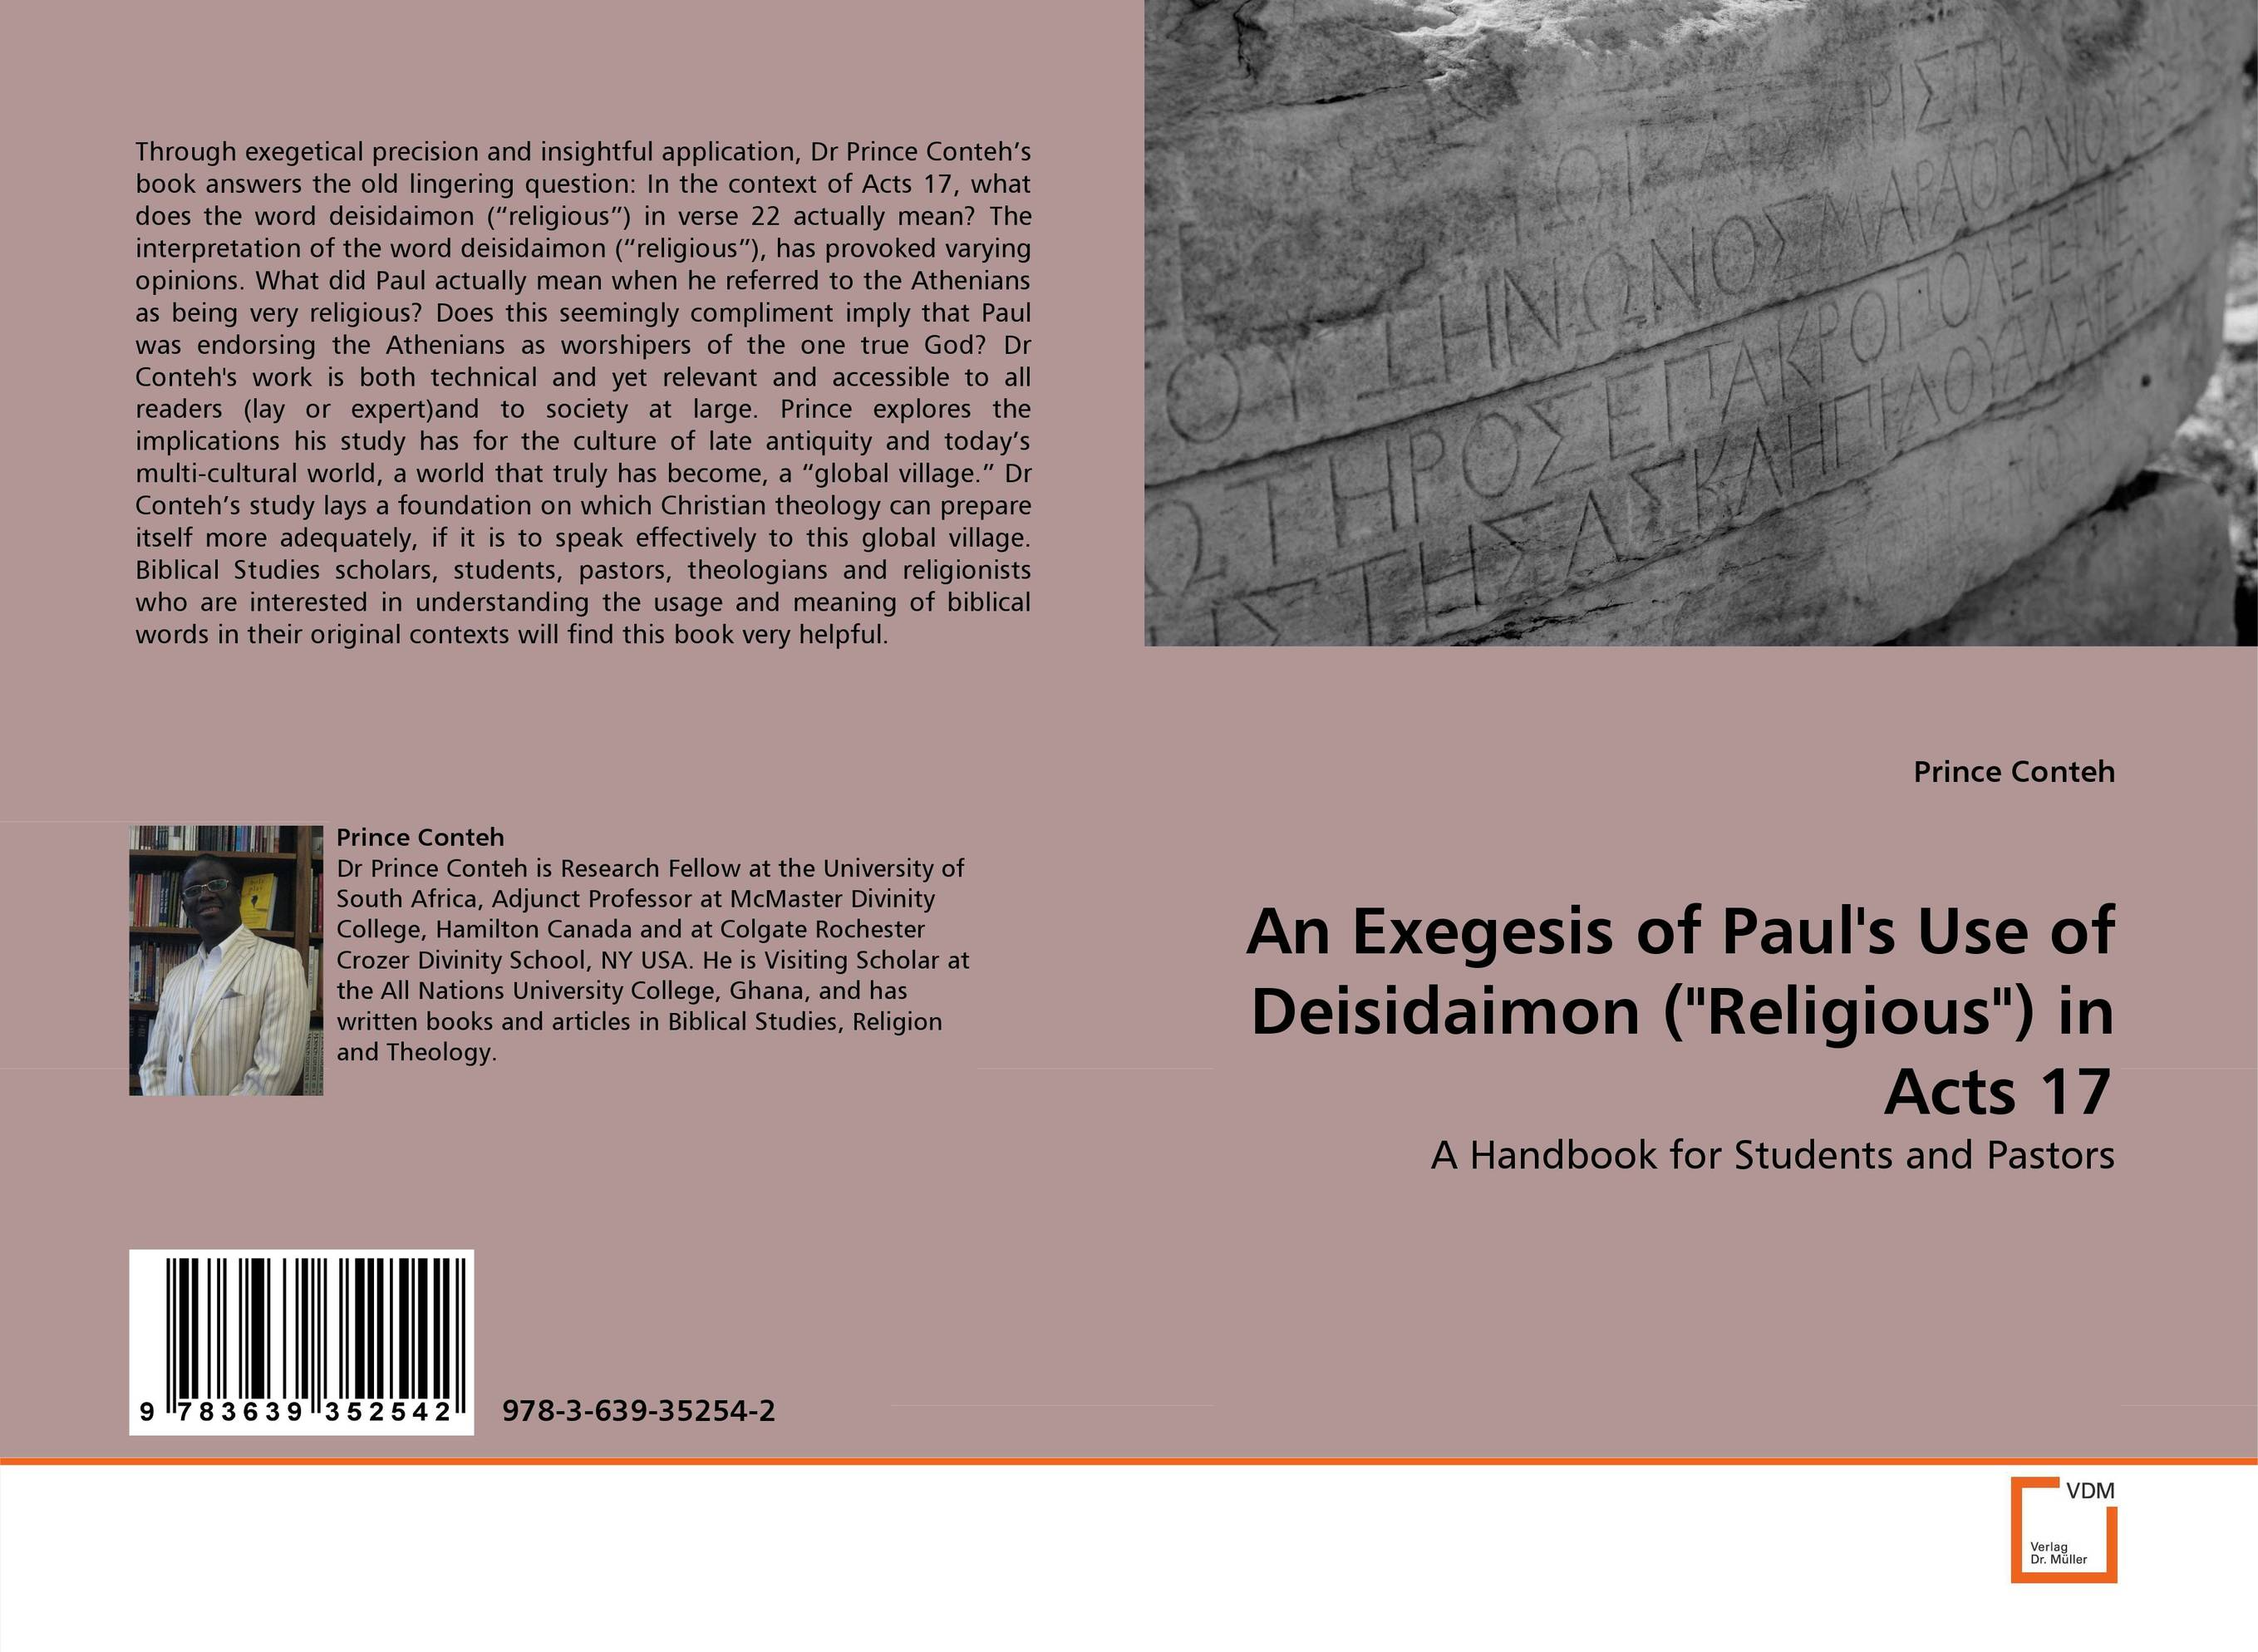 An Exegesis of Paul''s Use of Deisidaimon (Religious) in Acts 17 sola scriptura benedict xvi s theology of the word of god